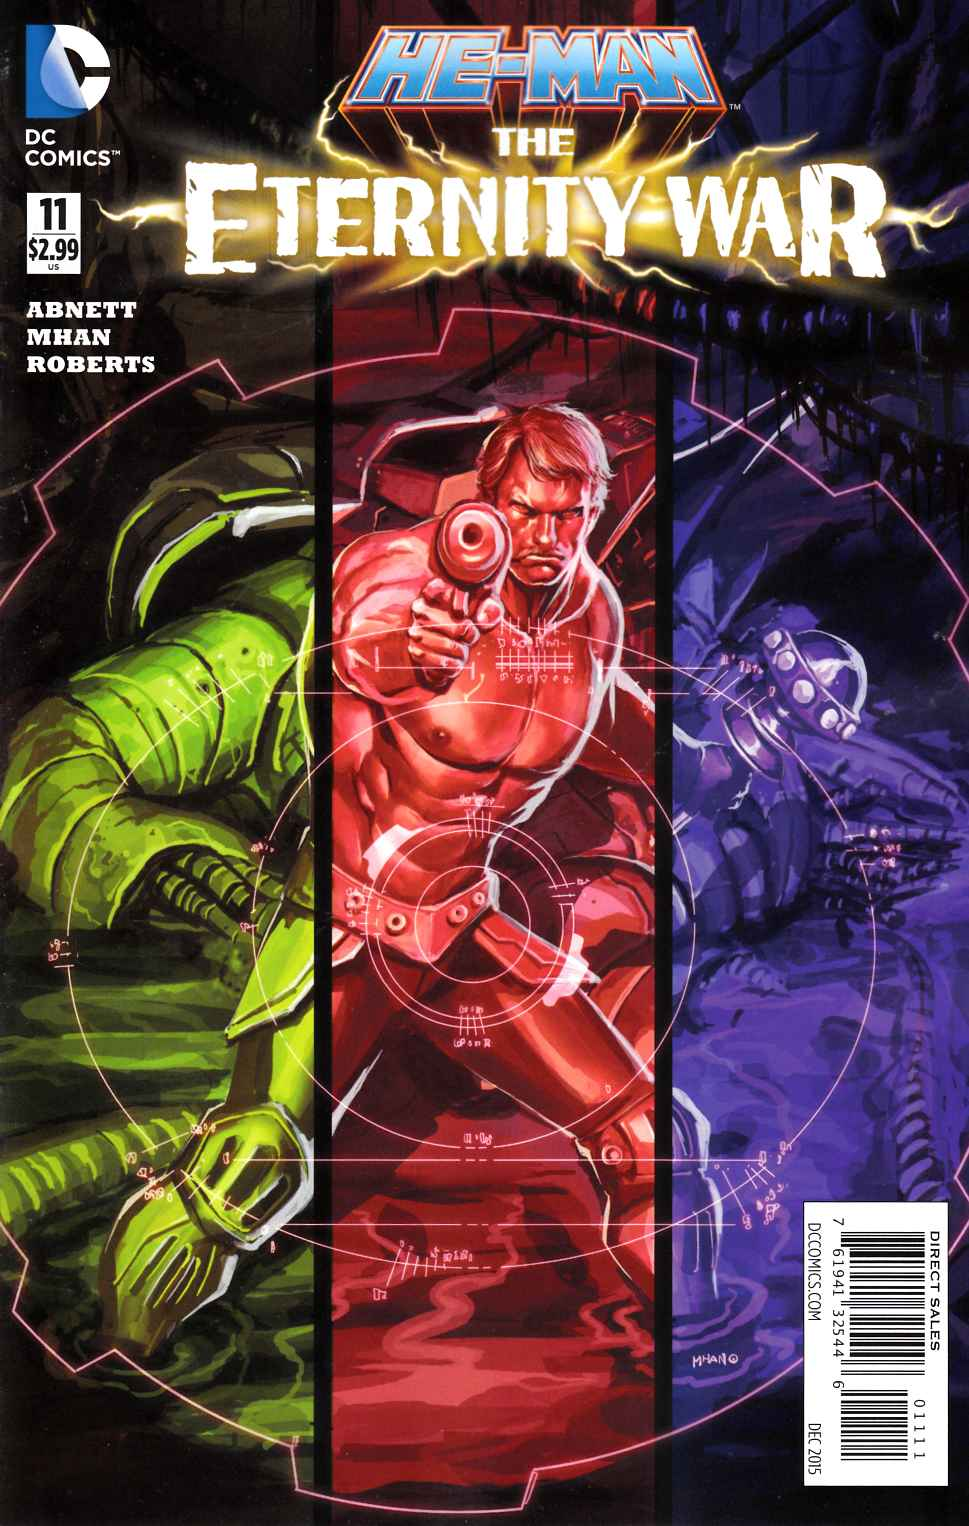 He Man the Eternity War #11 [DC Comic] THUMBNAIL